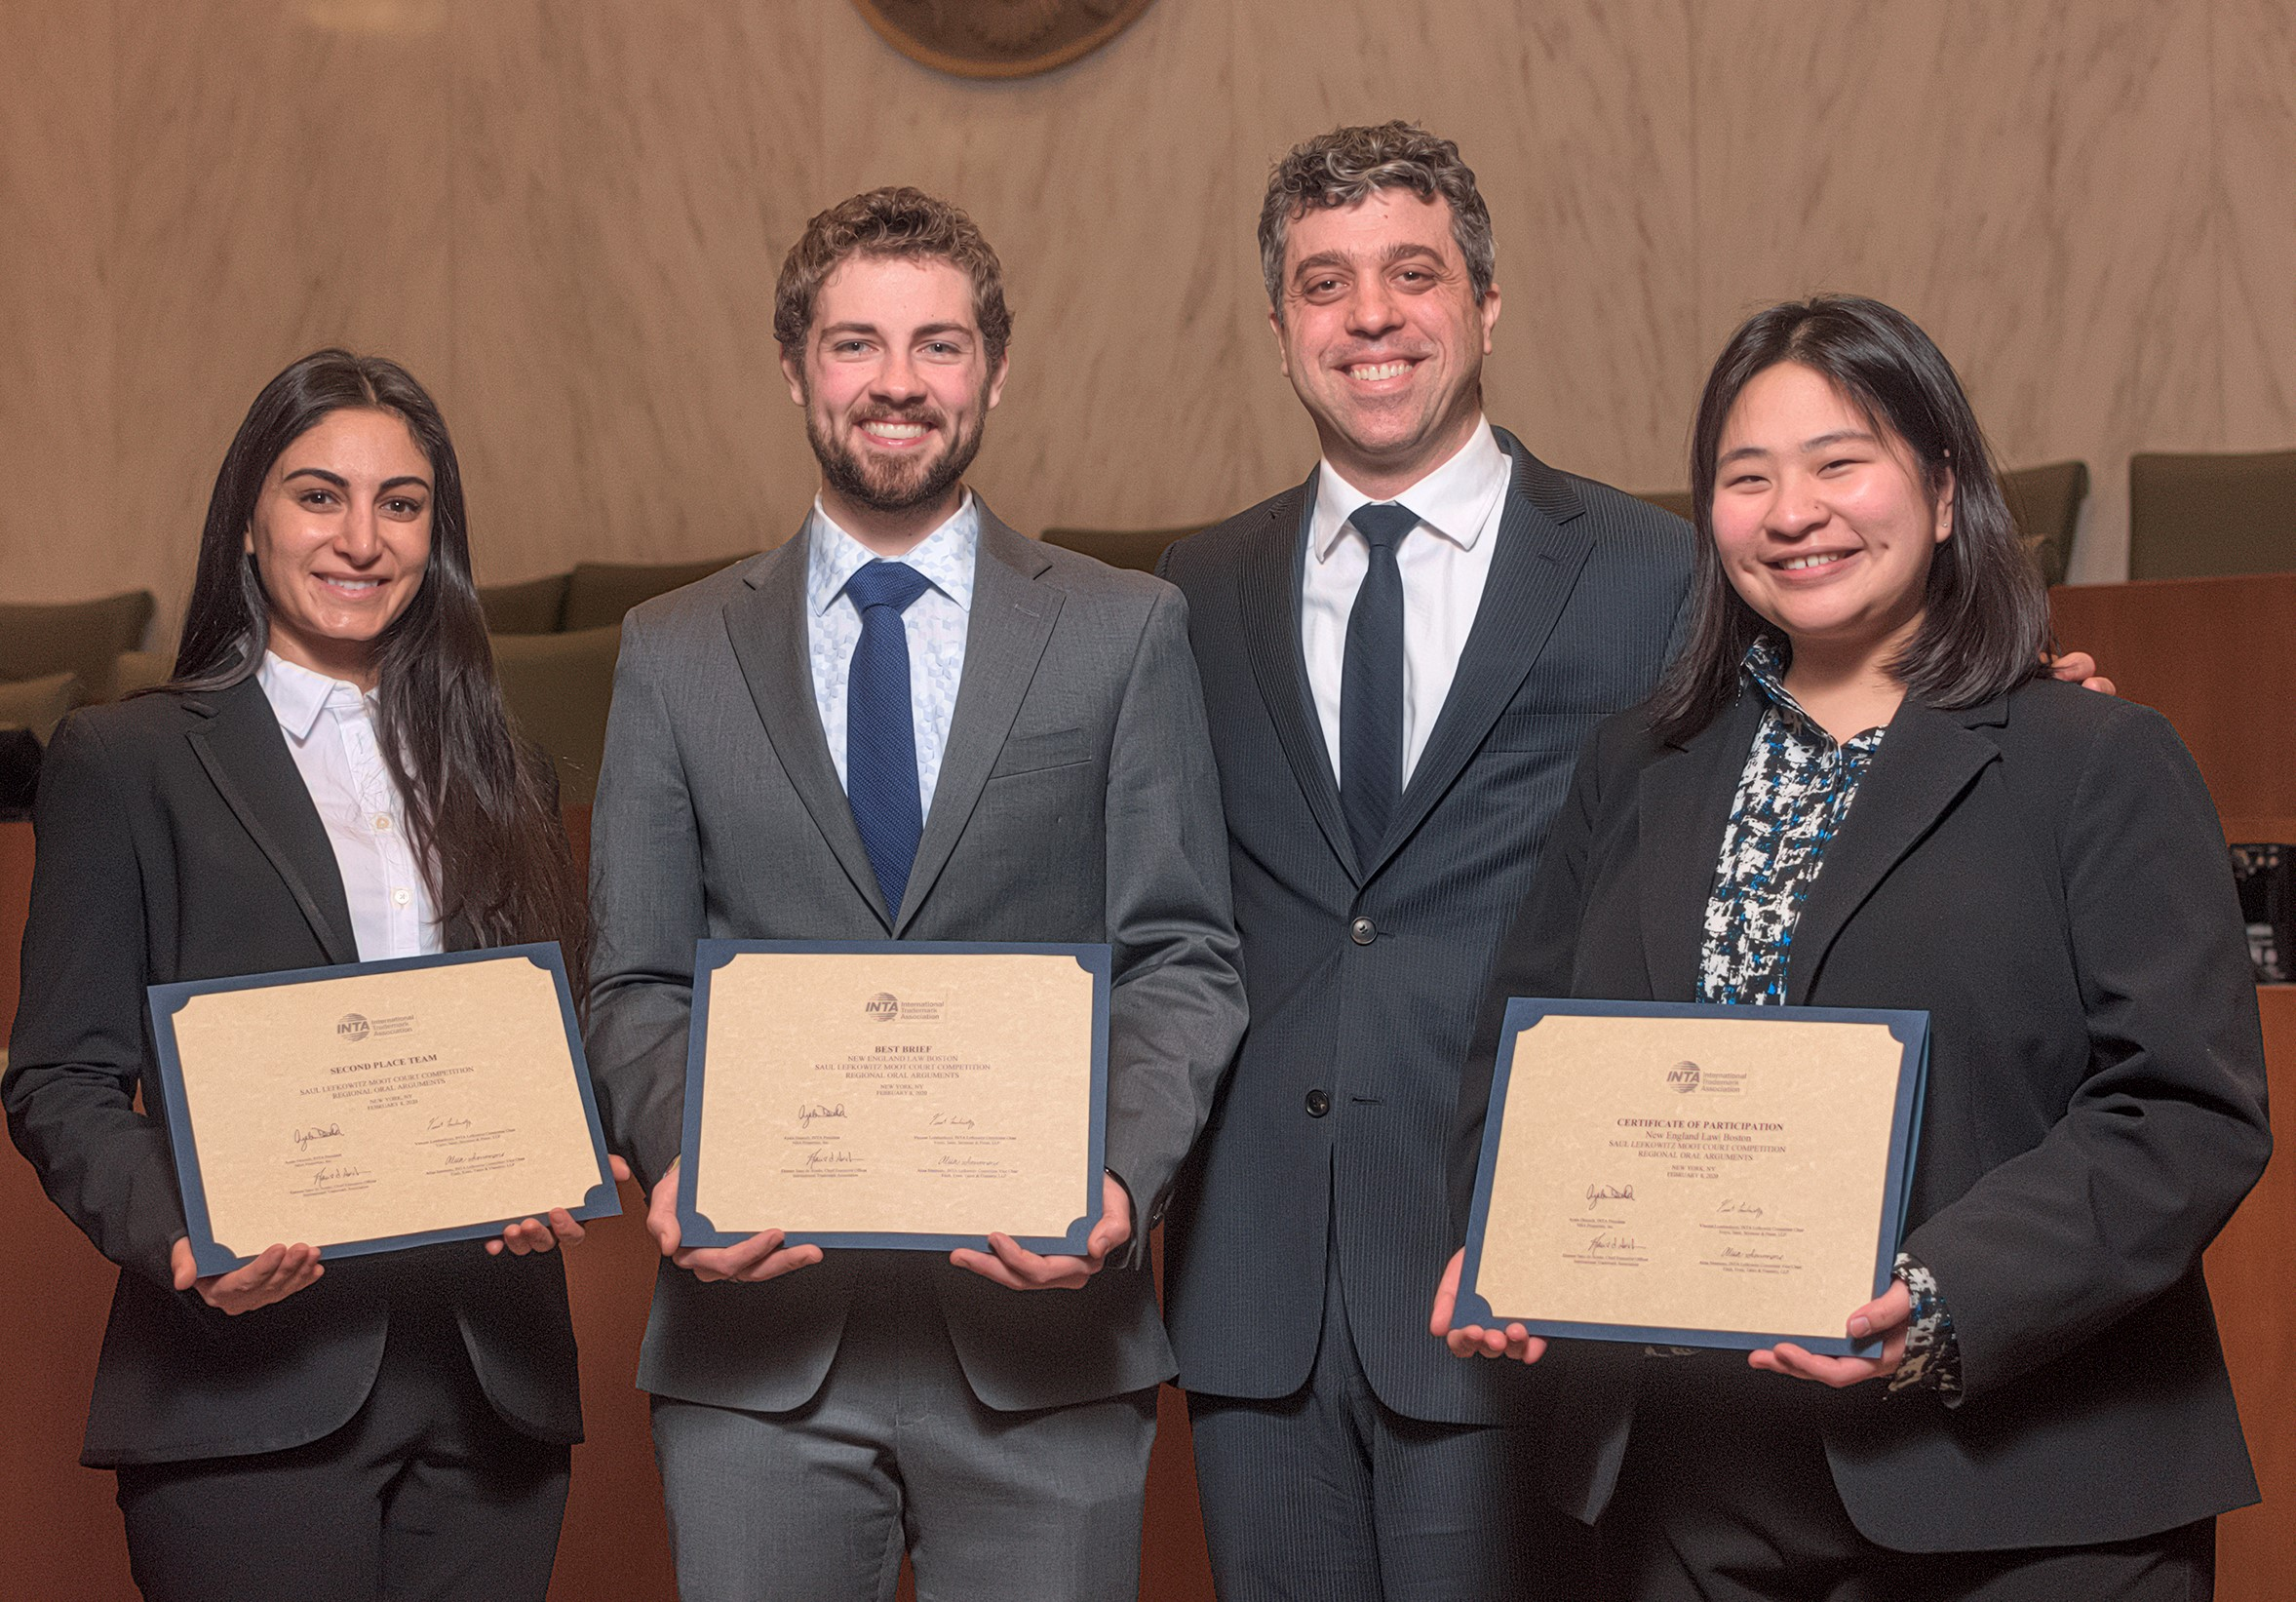 New England Law teams competing in moot court and college mock trial competitions